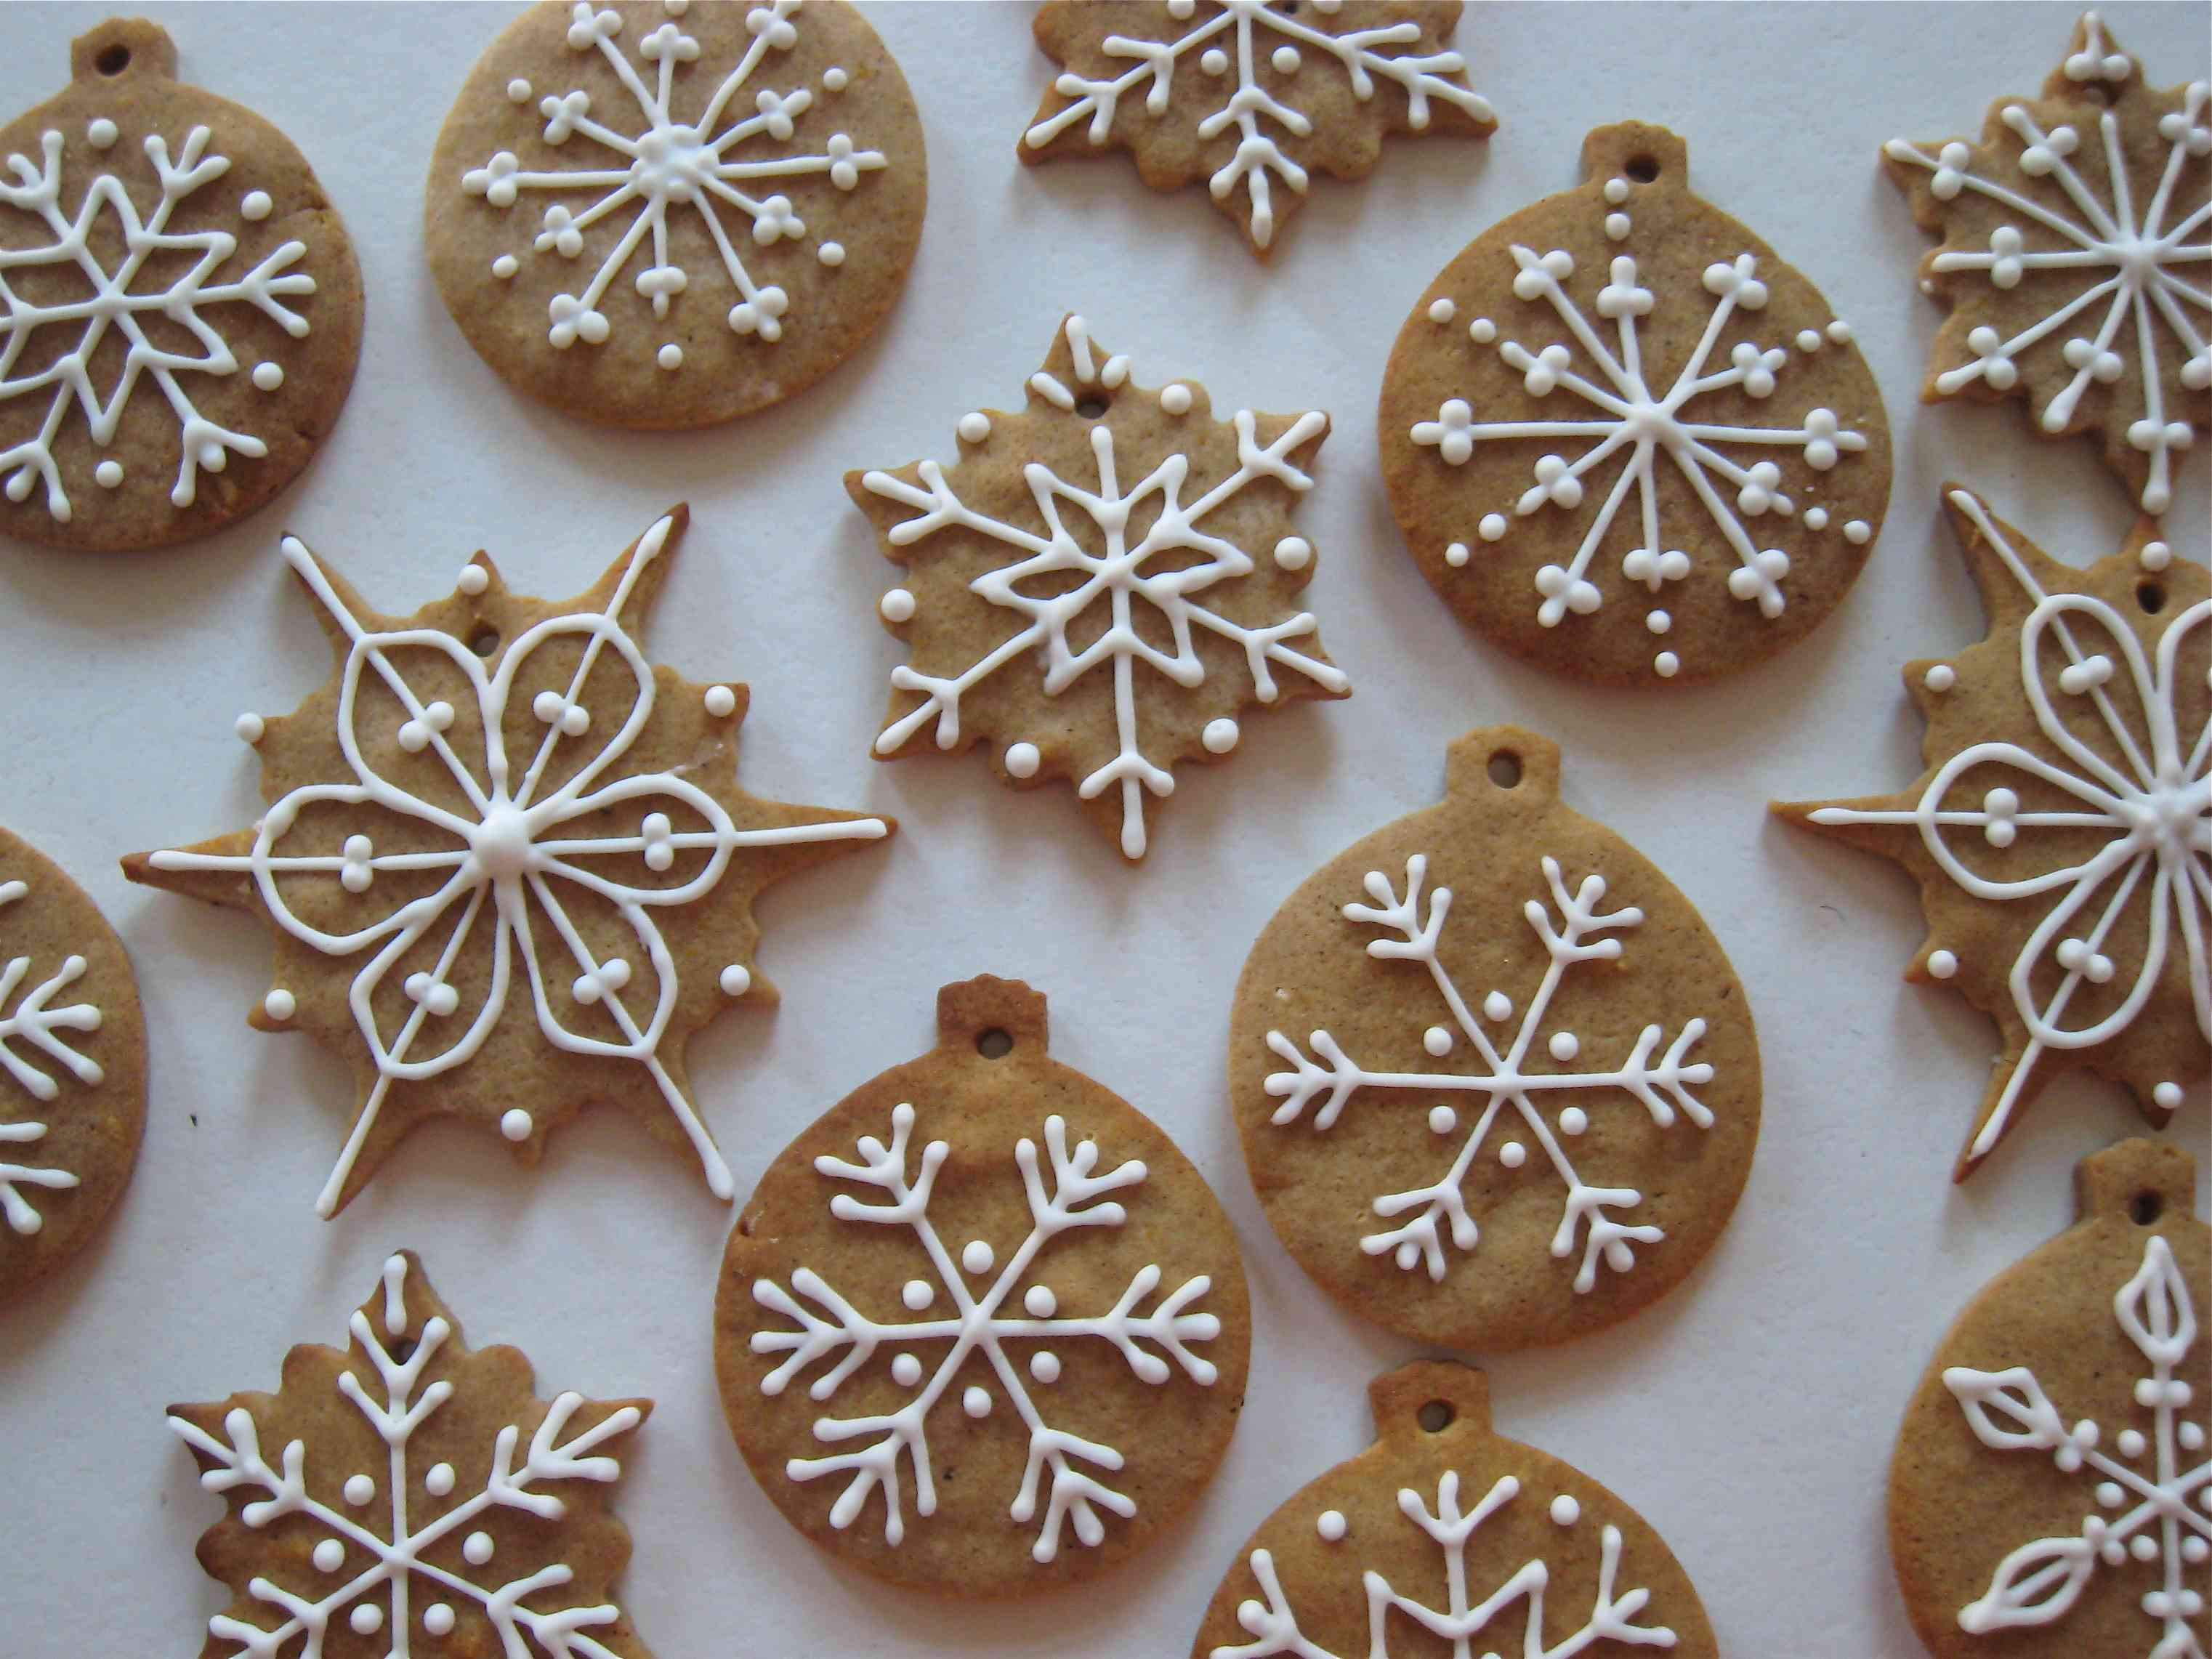 Gingerbread Cookies and Ornaments